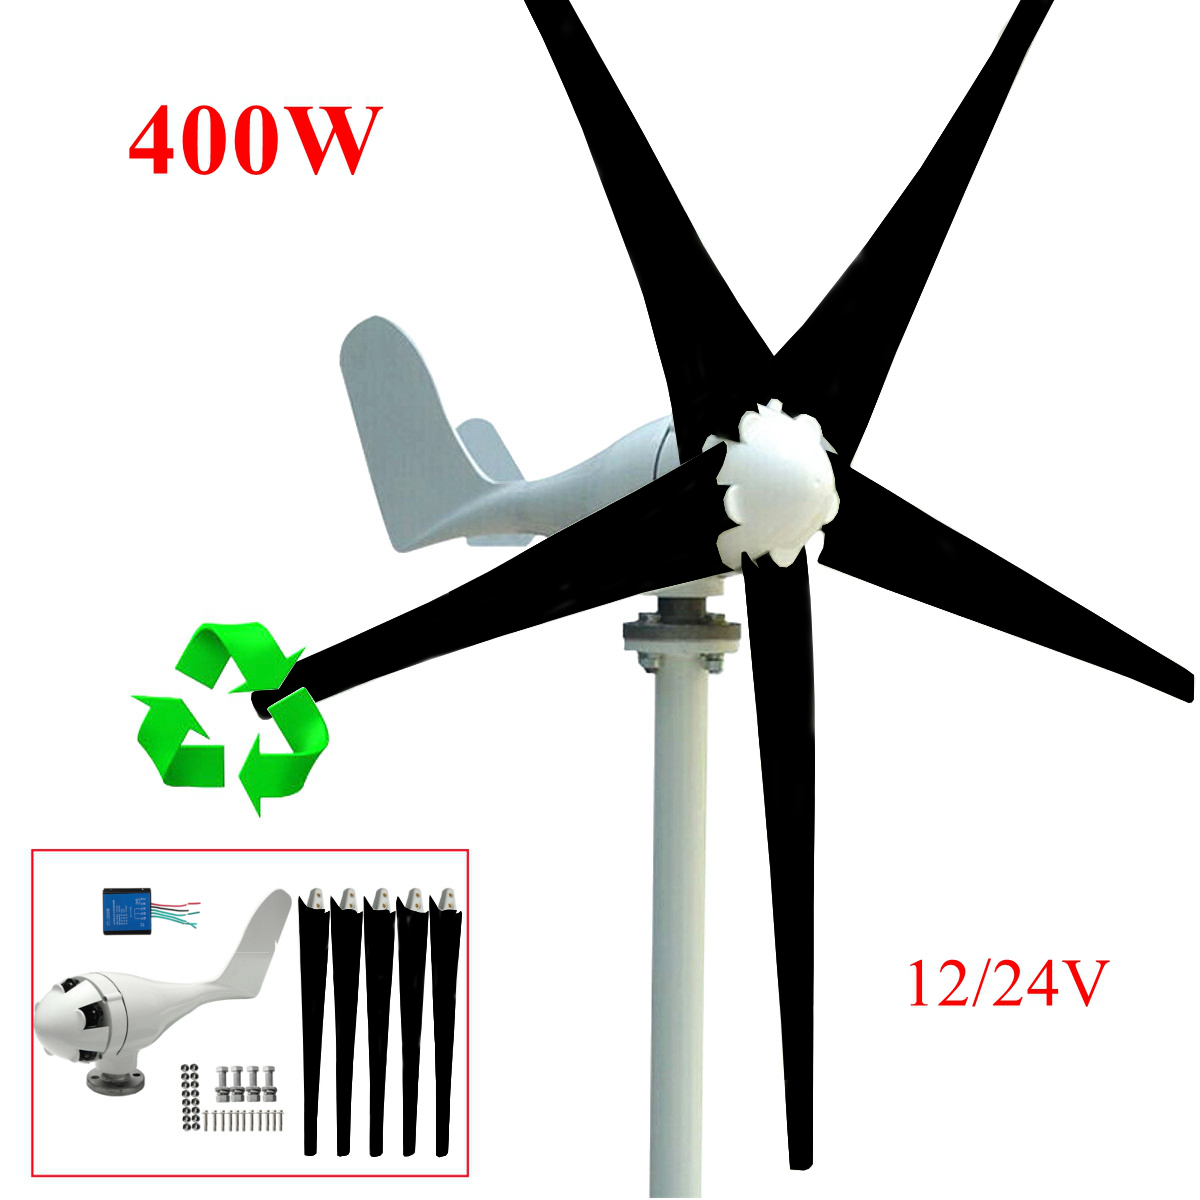 400W Power Wind Turbine Generator DC 12 24V 5 Blade with Windmill Charge Controller (Max... by